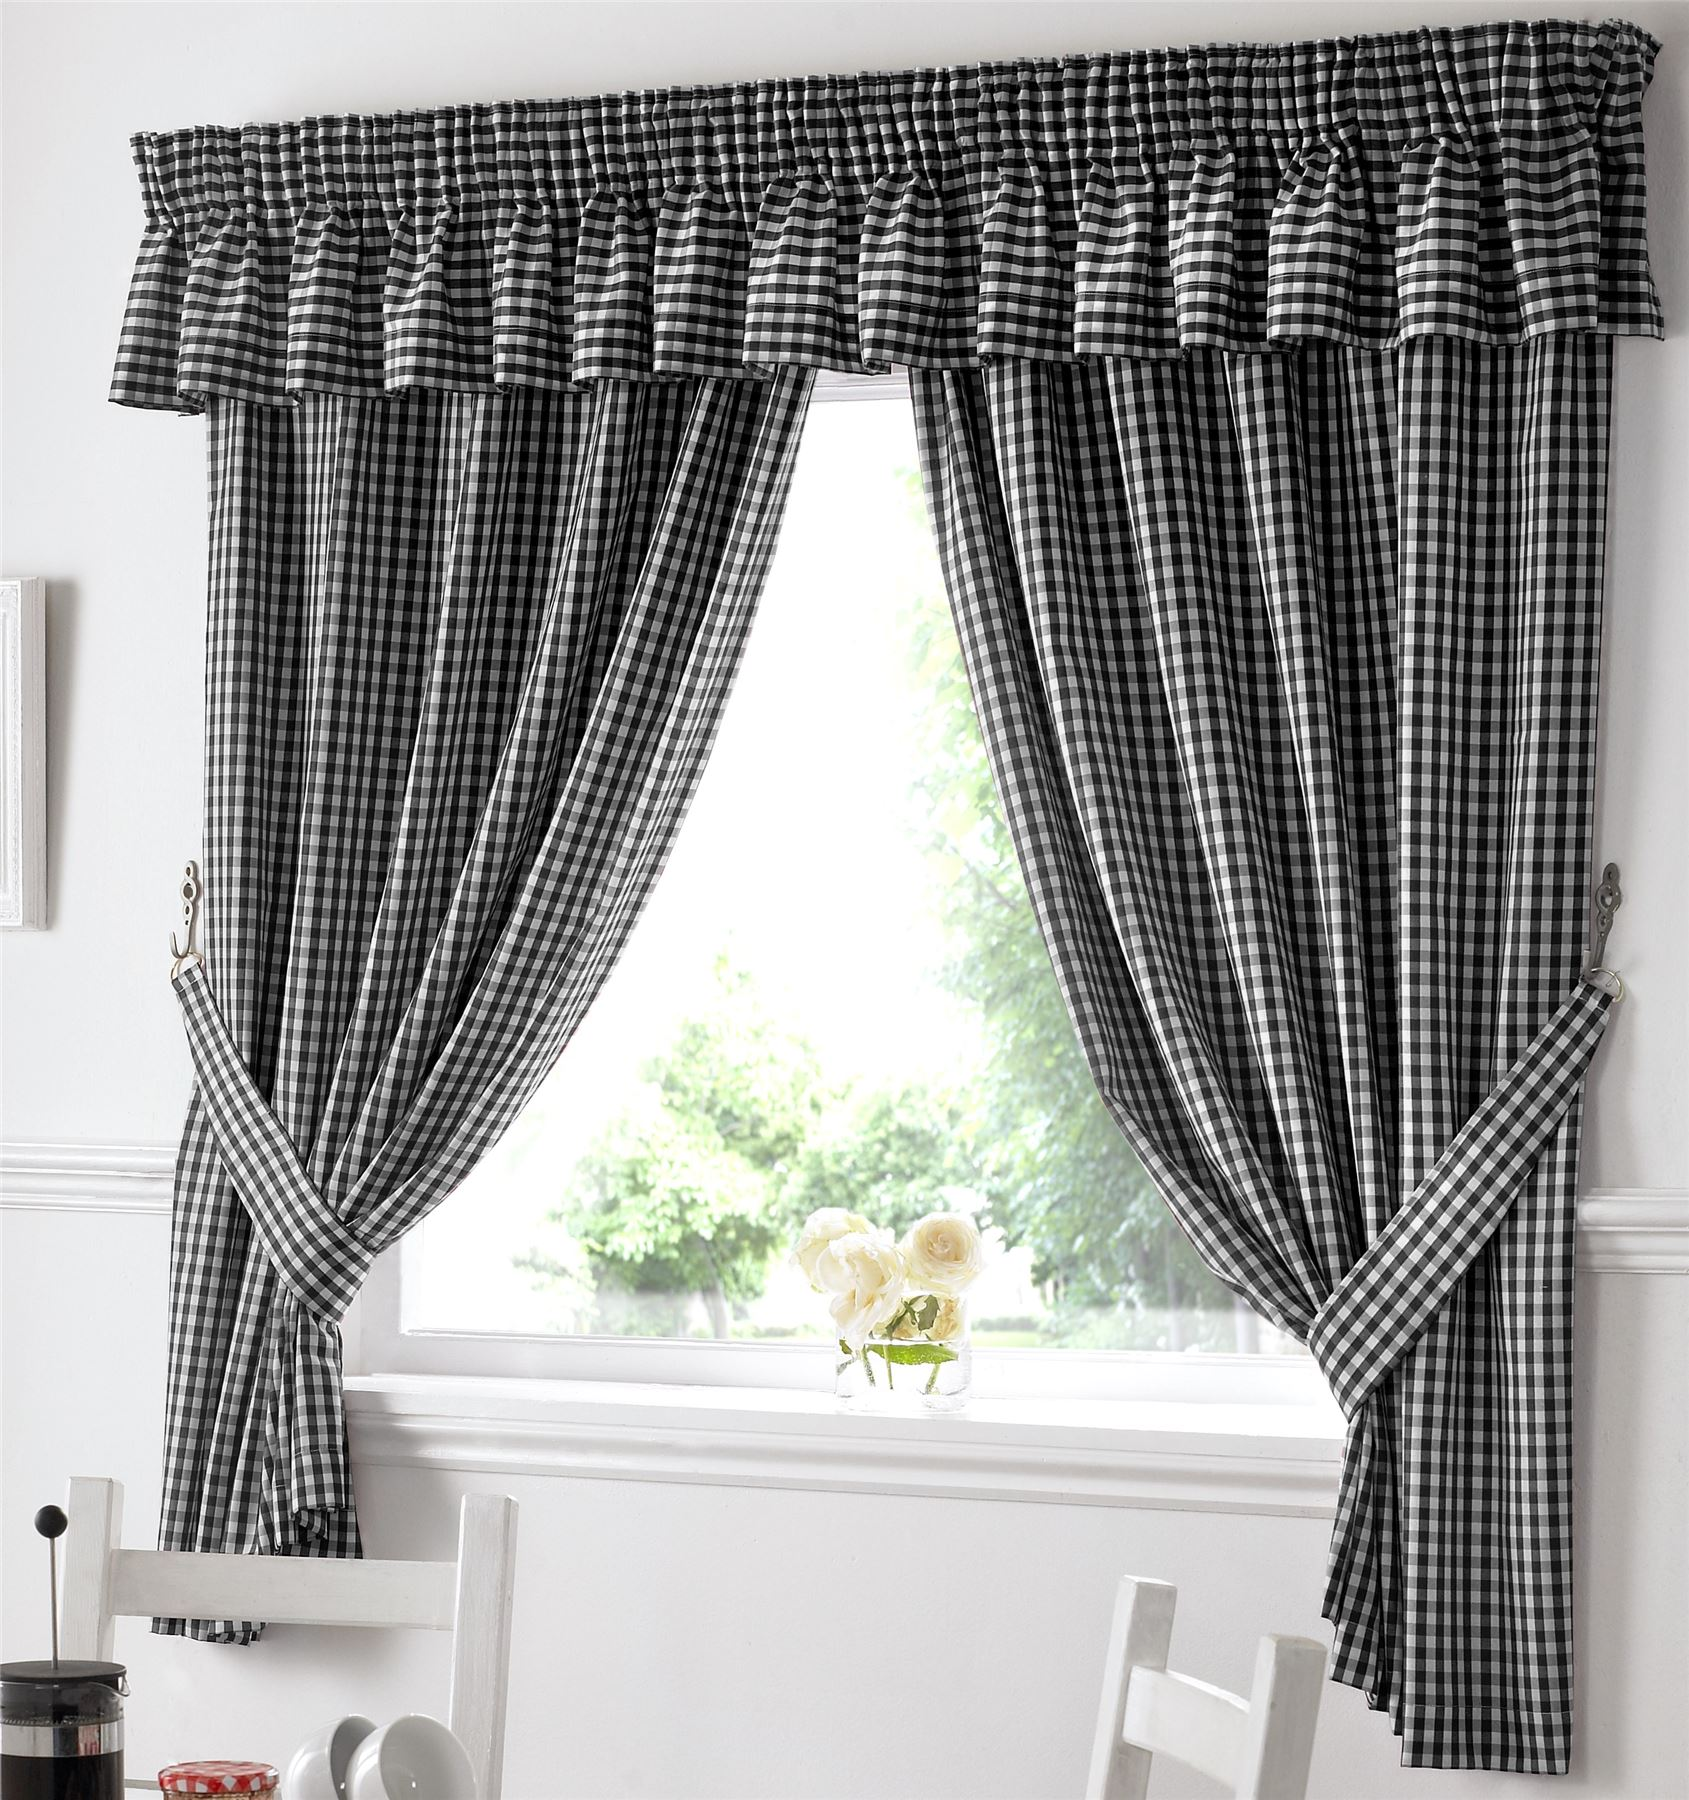 Kitchen Curtain Pelmets: Gingham Kitchen Window Curtains OR Matching Pelmet